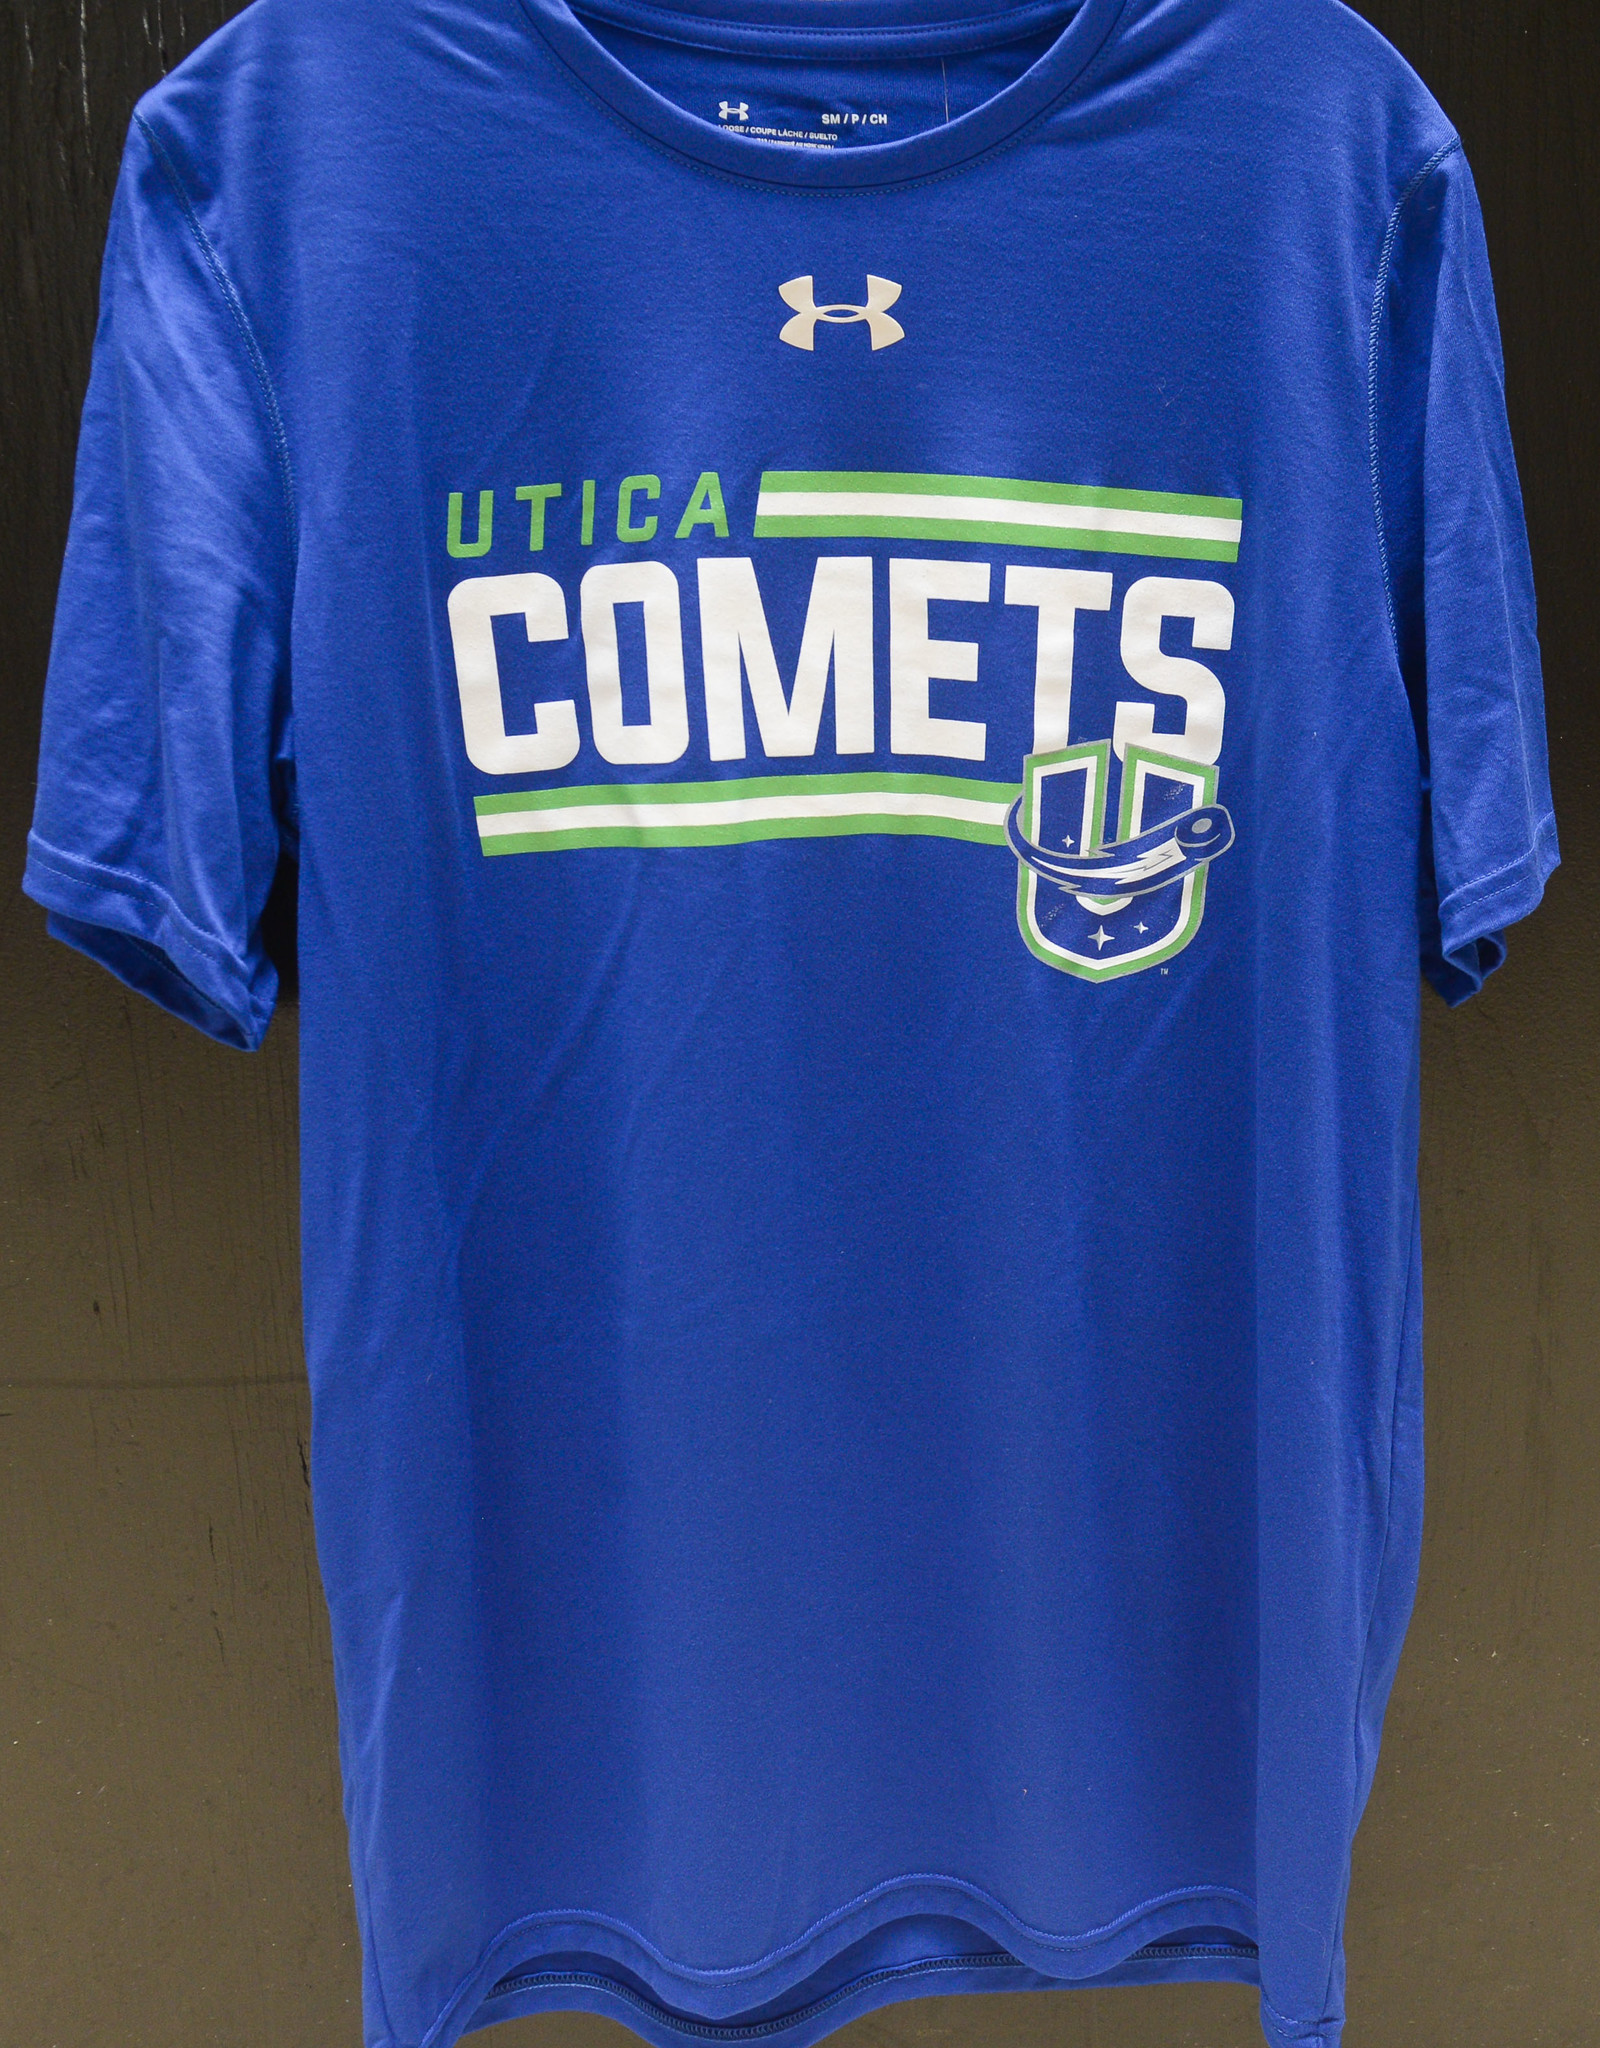 Under Armour Blue Locker Room T-Shirt w/ Comets U Logo